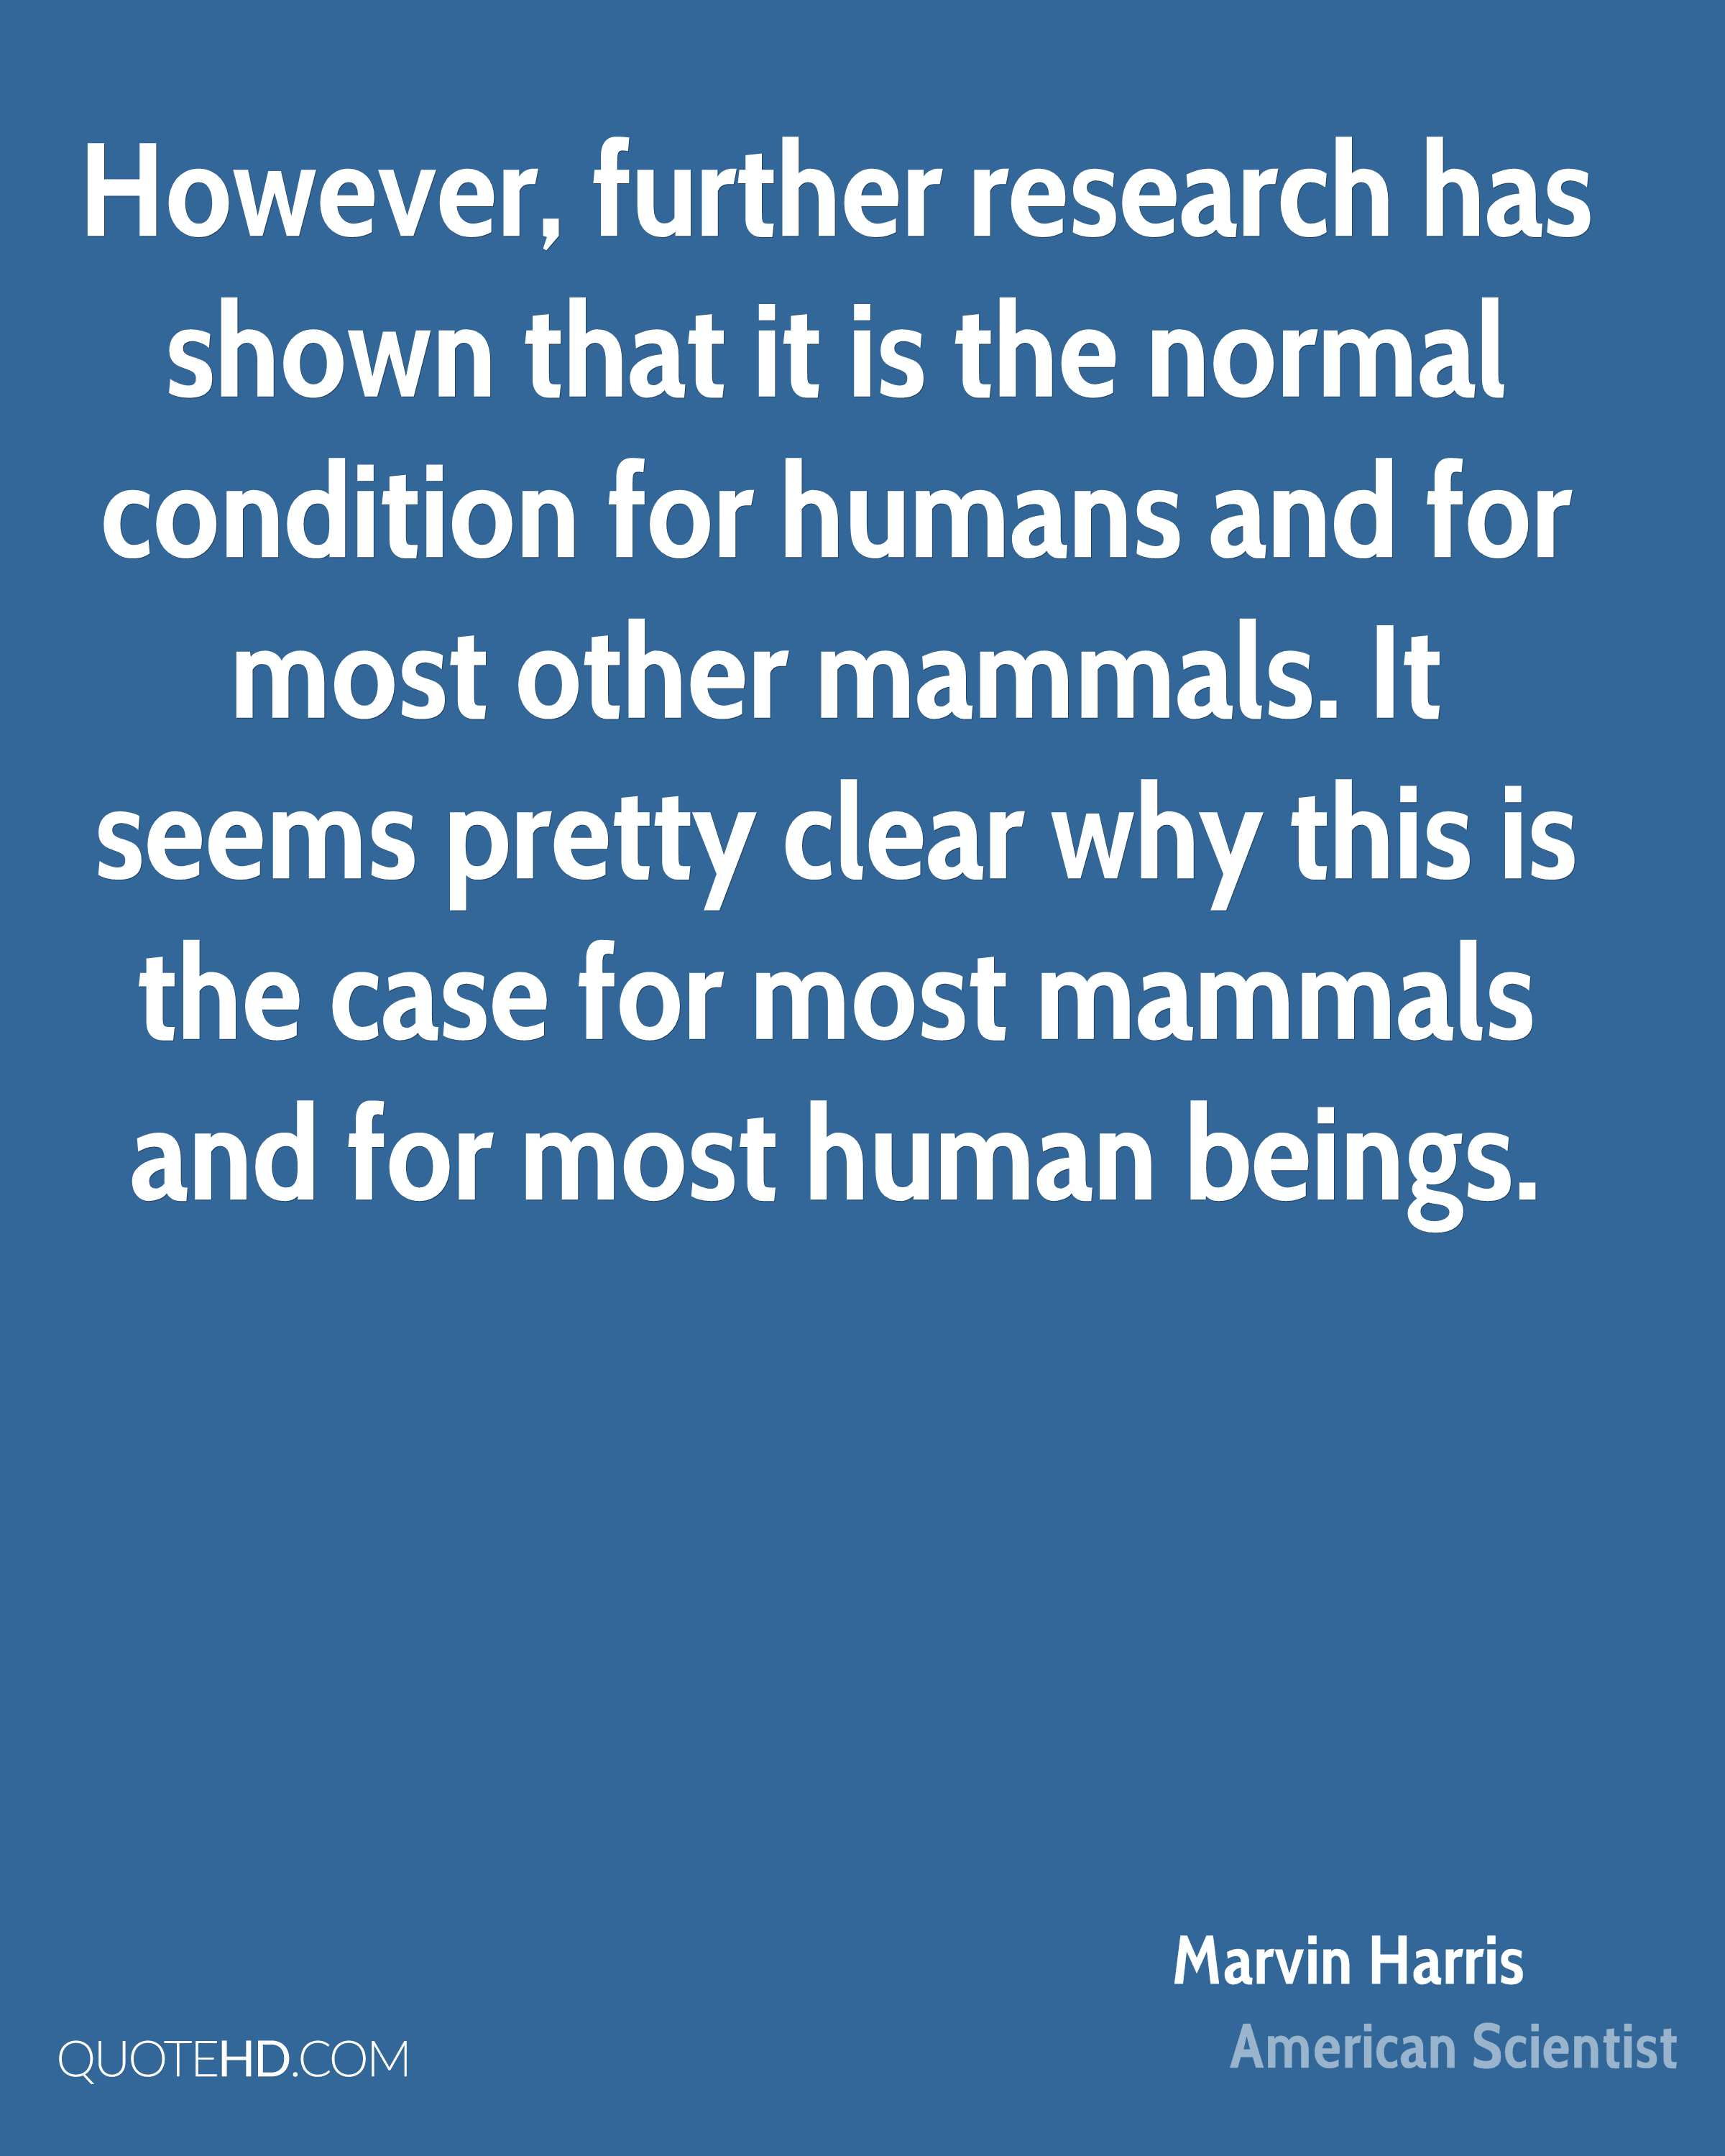 However, further research has shown that it is the normal condition for humans and for most other mammals. It seems pretty clear why this is the case for most mammals and for most human beings.